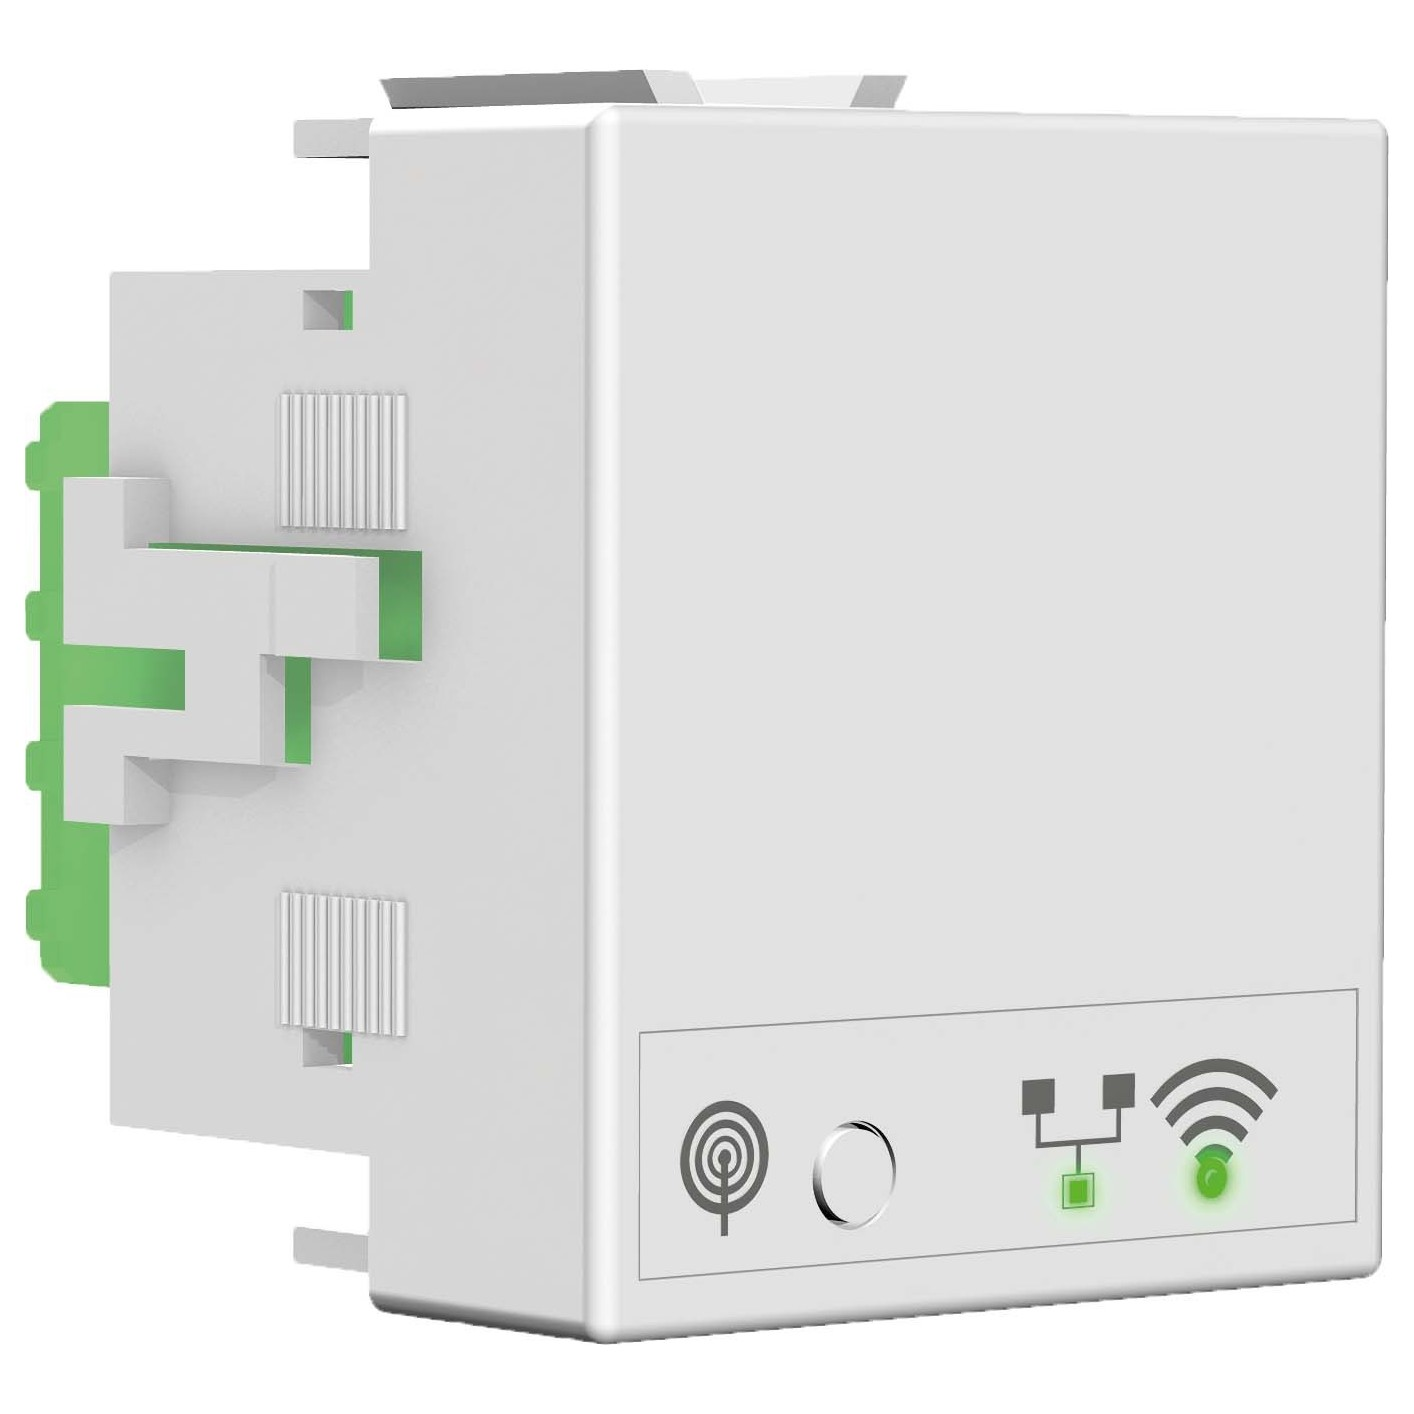 Homeway WLAN Access Point HW-INAP 2.4T up-V2